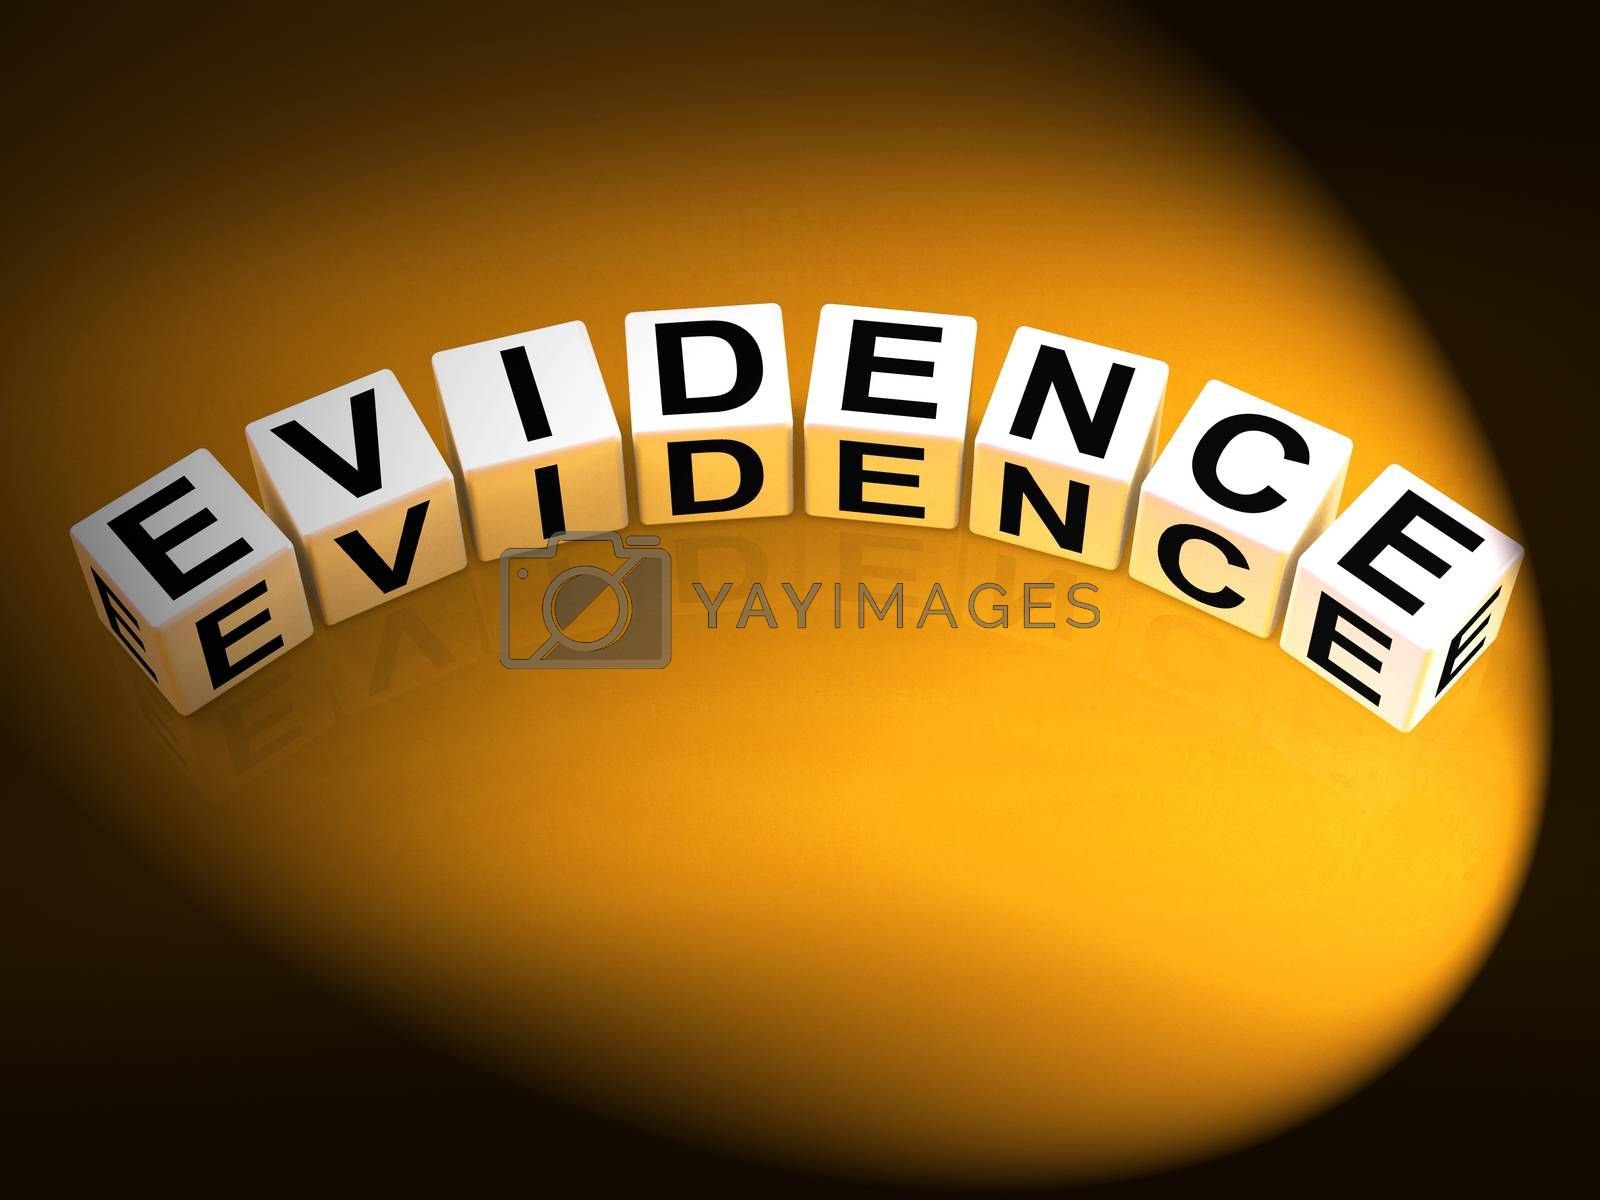 Evidence Dice Represent Evidential Substantiation and Proof by stuartmiles